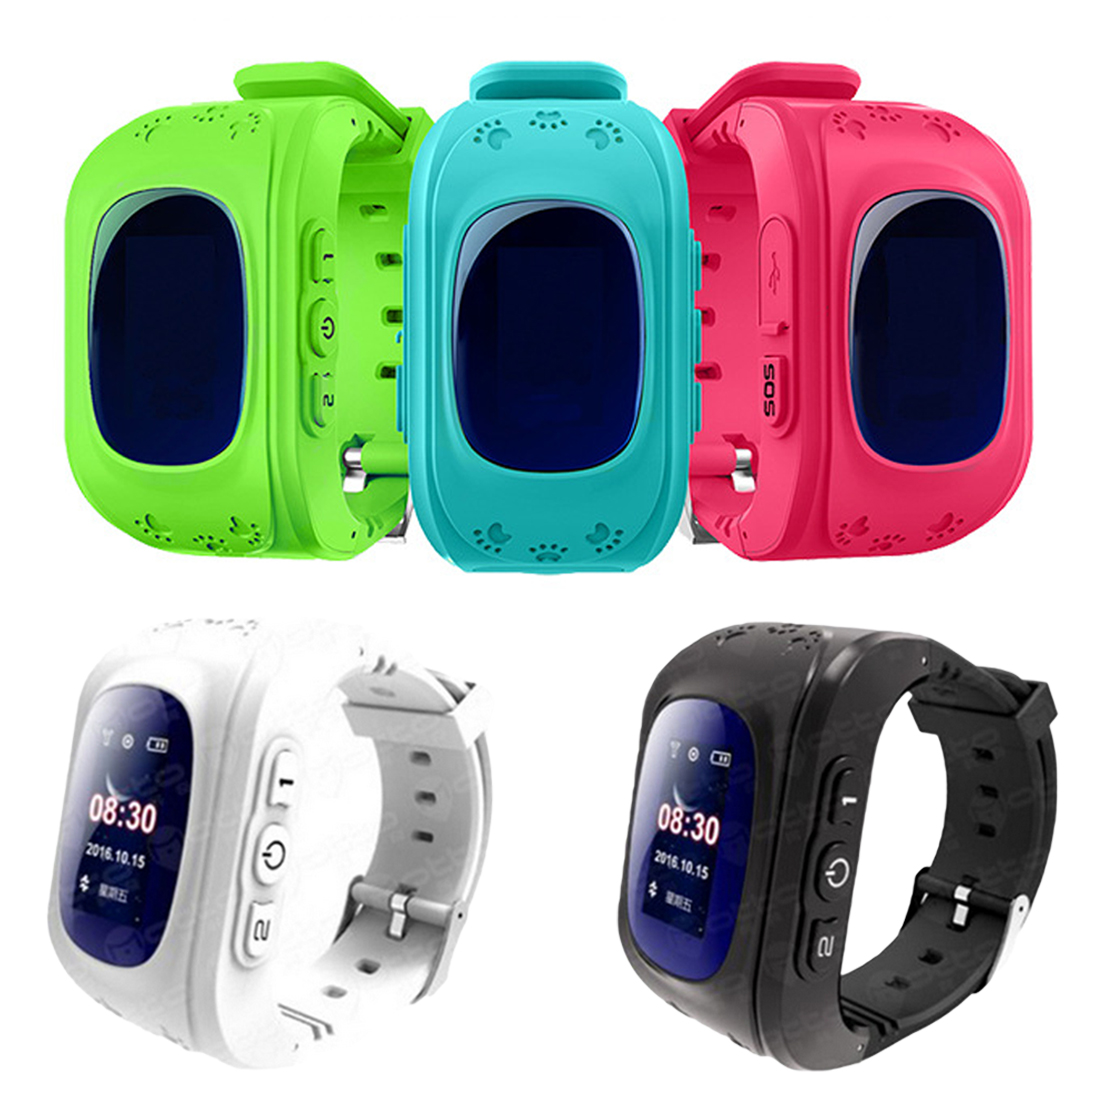 CONTECHIA <font><b>Q50</b></font> GPS <font><b>Kids</b></font> Watches for Children SOS Call Location Finder Locator Tracker Anti Lost Monitor <font><b>Smartwatch</b></font> image